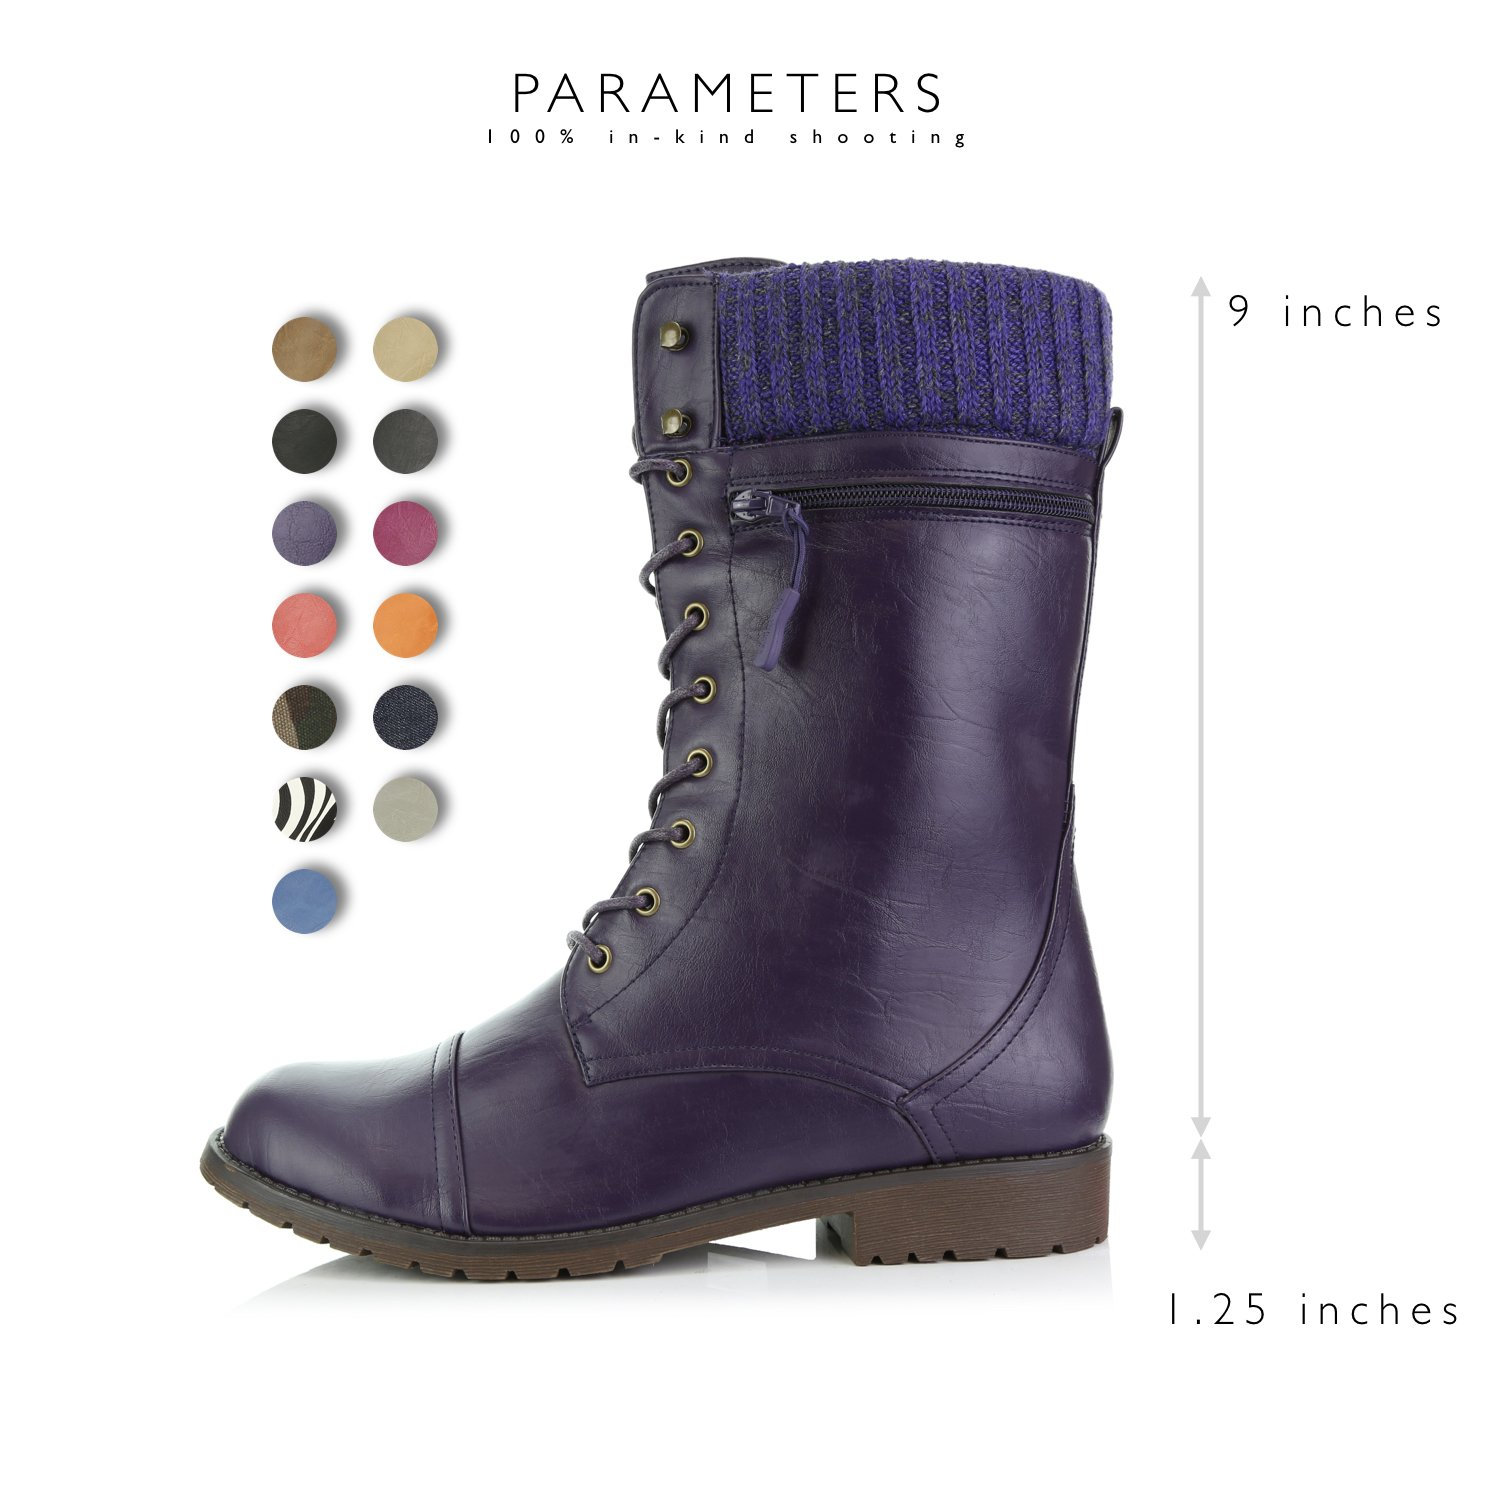 DailyShoes Women's Combat Style up Ankle Bootie Quilted Military Knit Credit Card Knife Money Wallet Pocket Boots B0155N9ZRK 12 B(M) US|Purple Pu